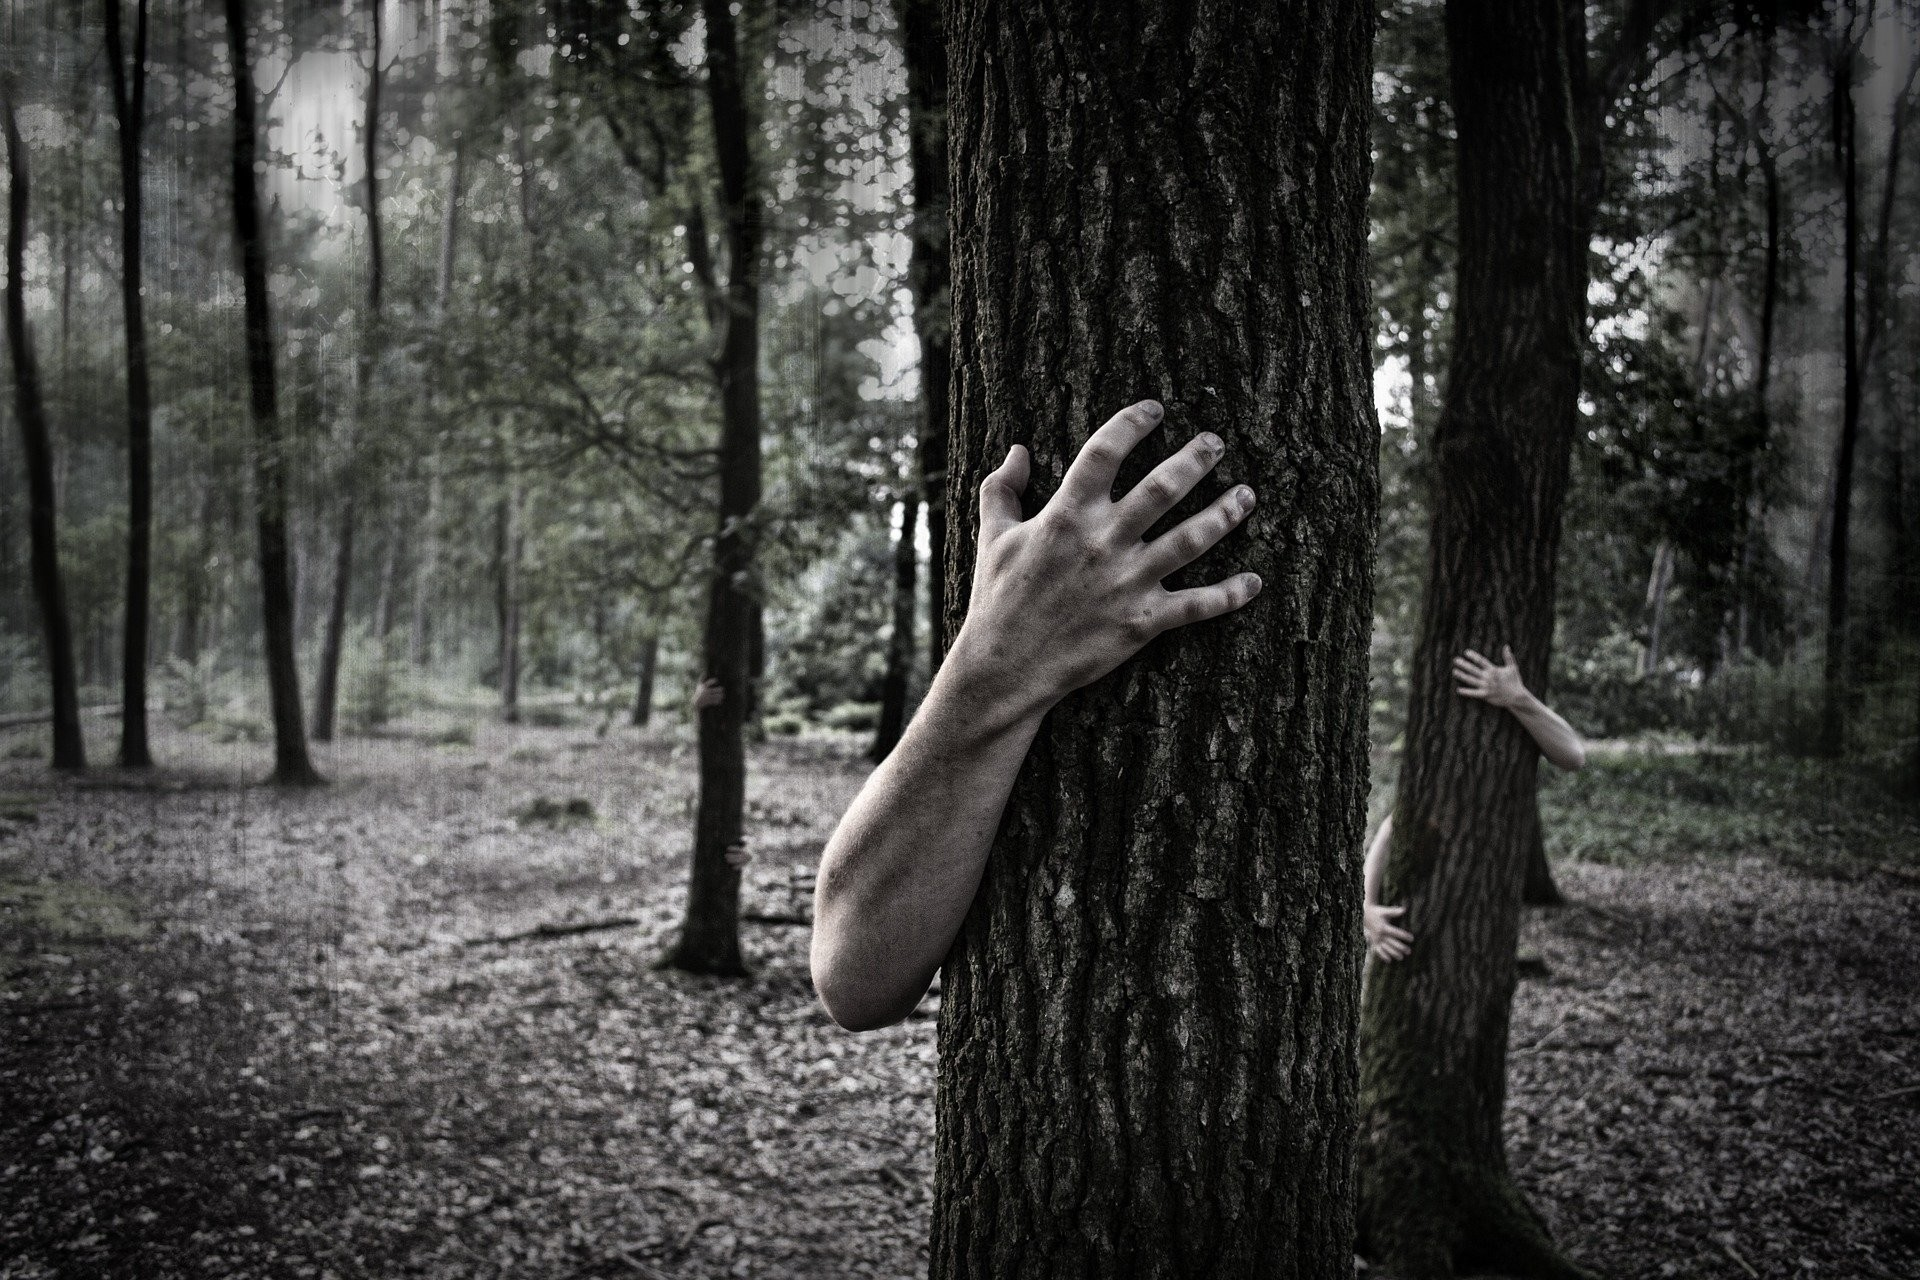 1920x1280 Hands Trunk Creepy Zombie Forest Horror Scary Forest Wallpaper At Dark  Wallpapers